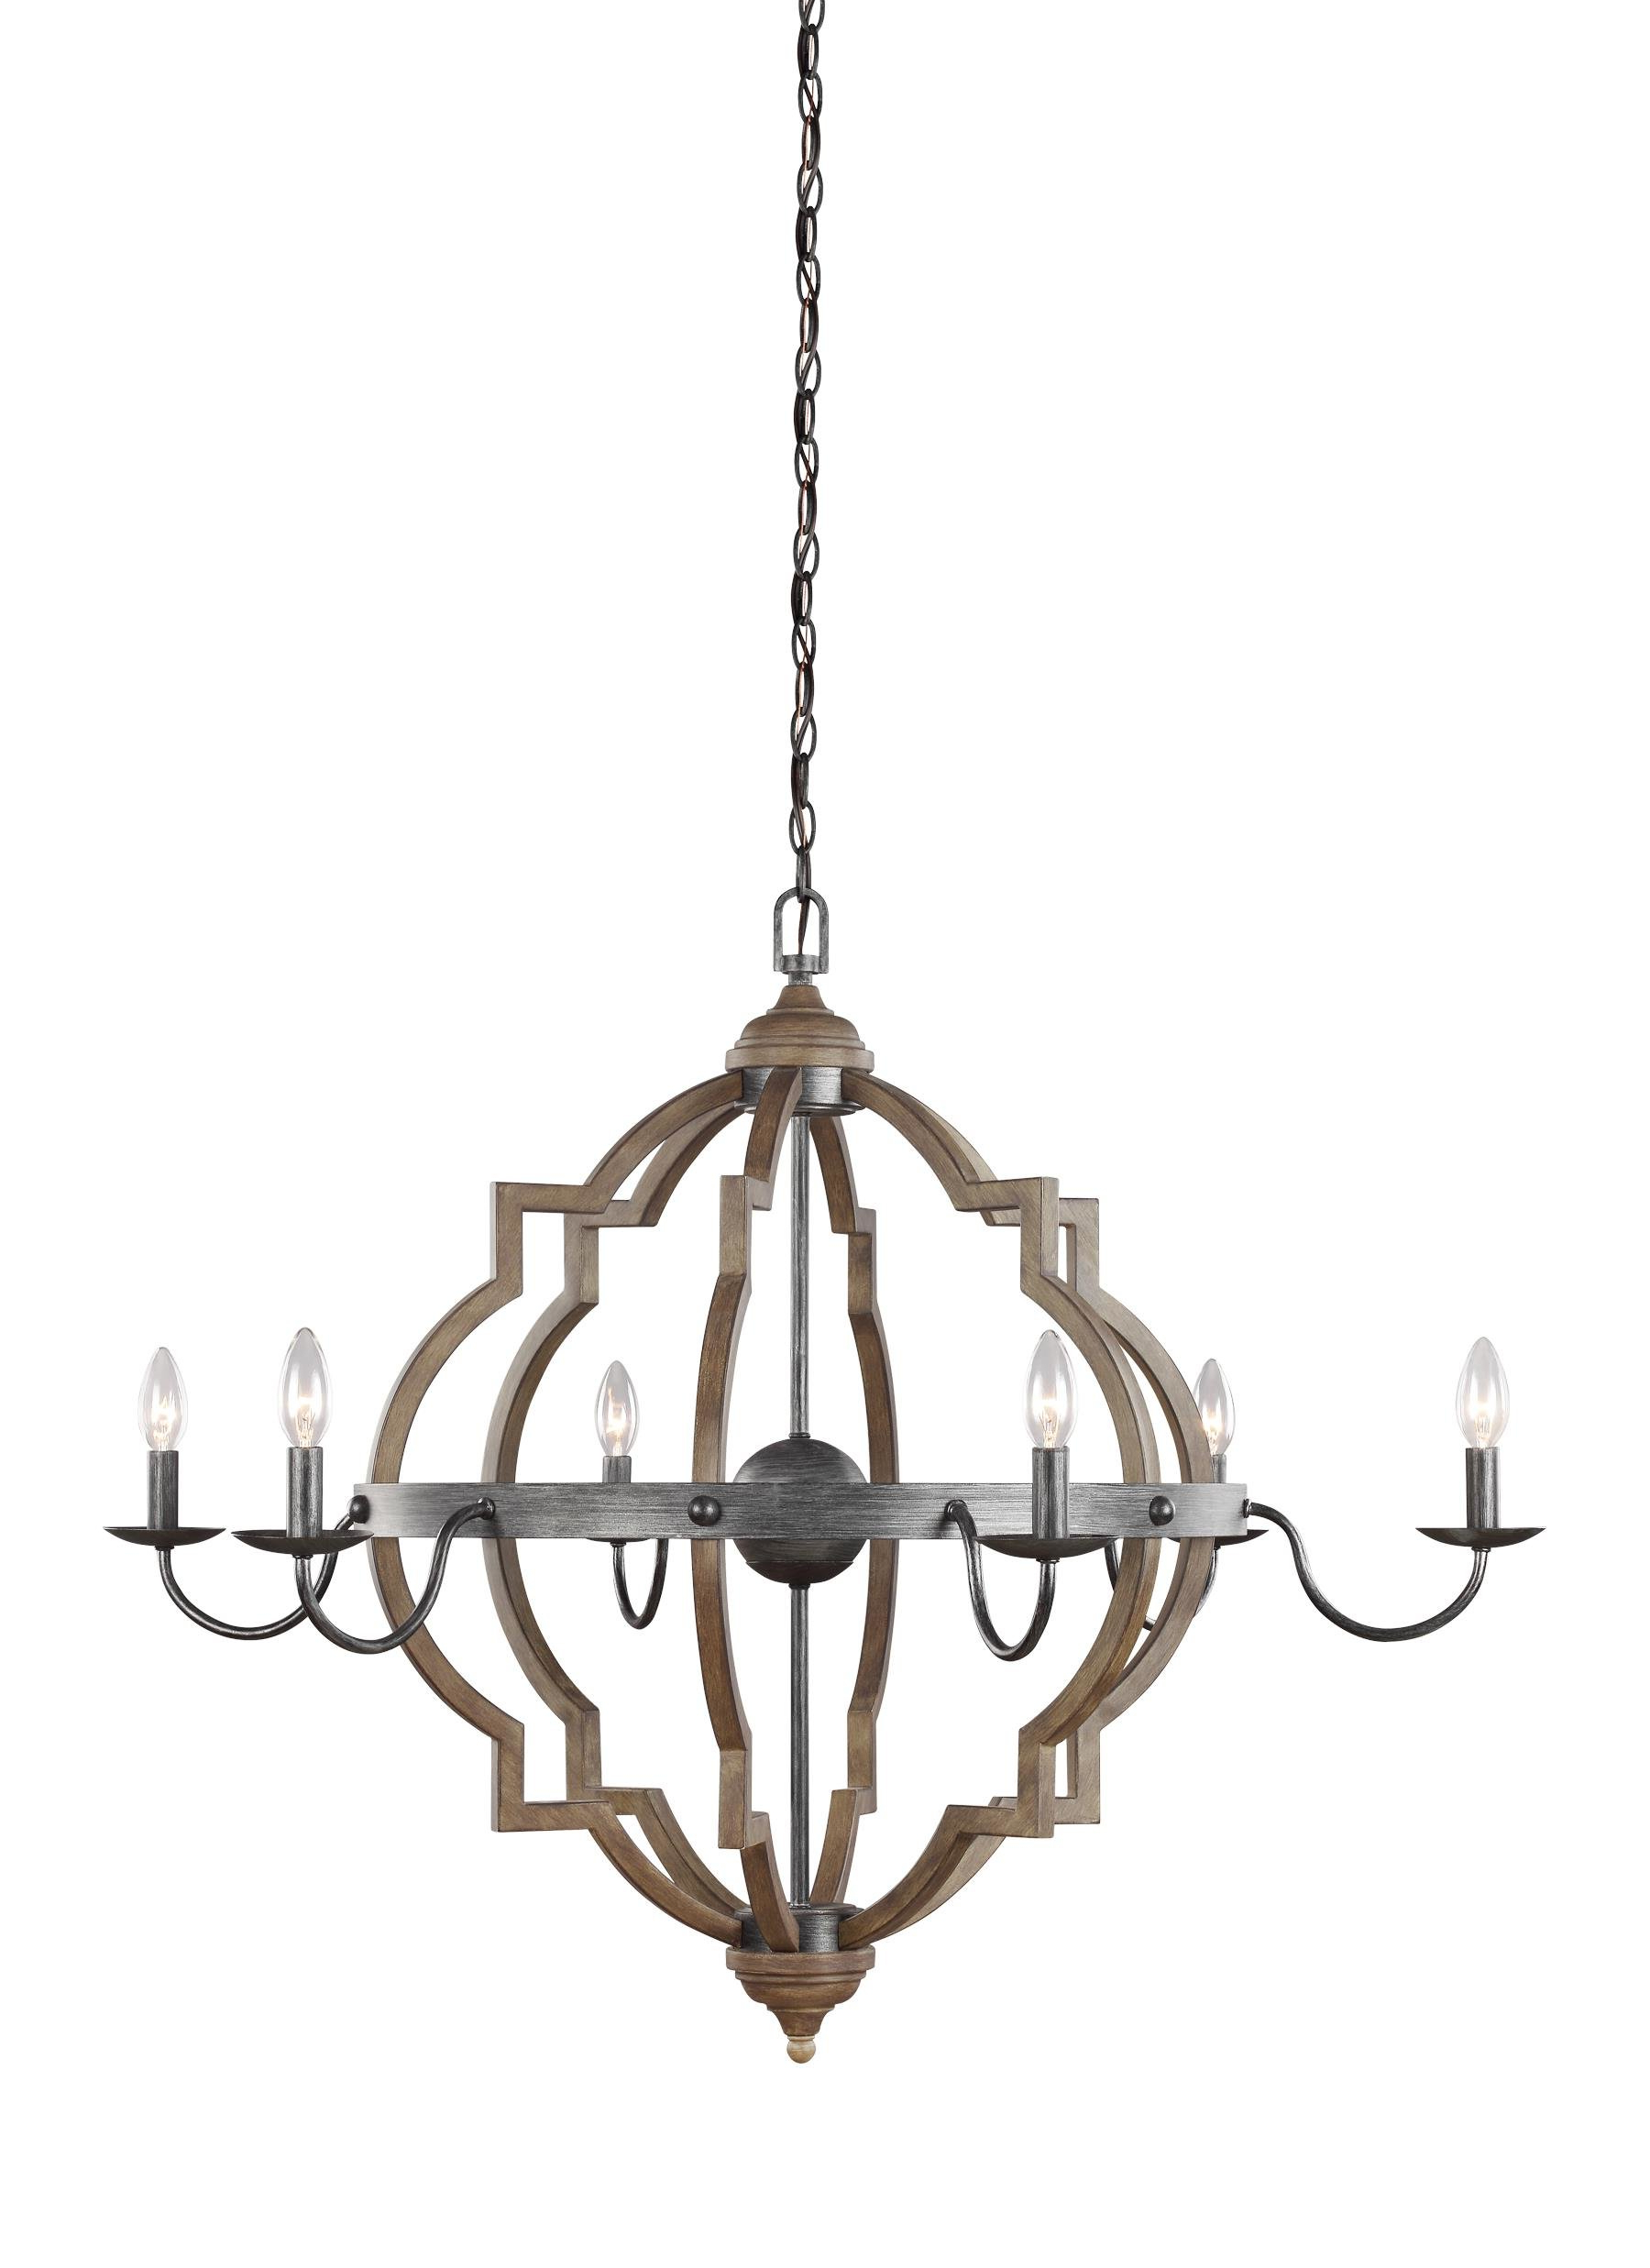 Donna 6 Light Globe Chandeliers For Well Known Donna 6 Light Candle Style Chandelier & Reviews (Gallery 4 of 20)